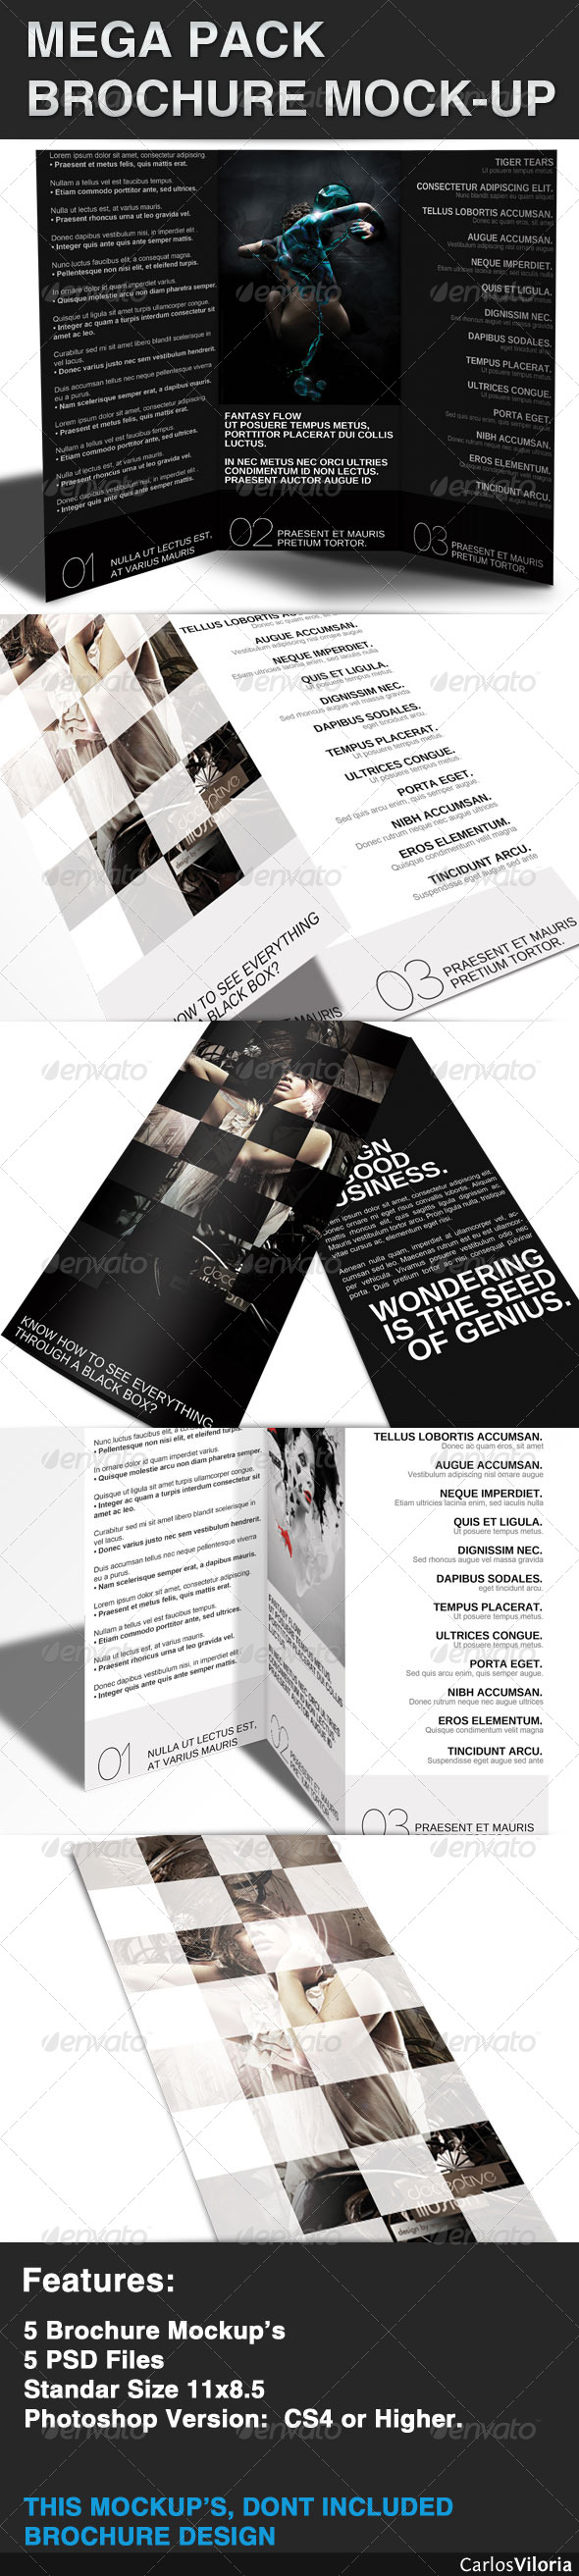 Mega pack Brochure - Mock-Up - Brochures Print